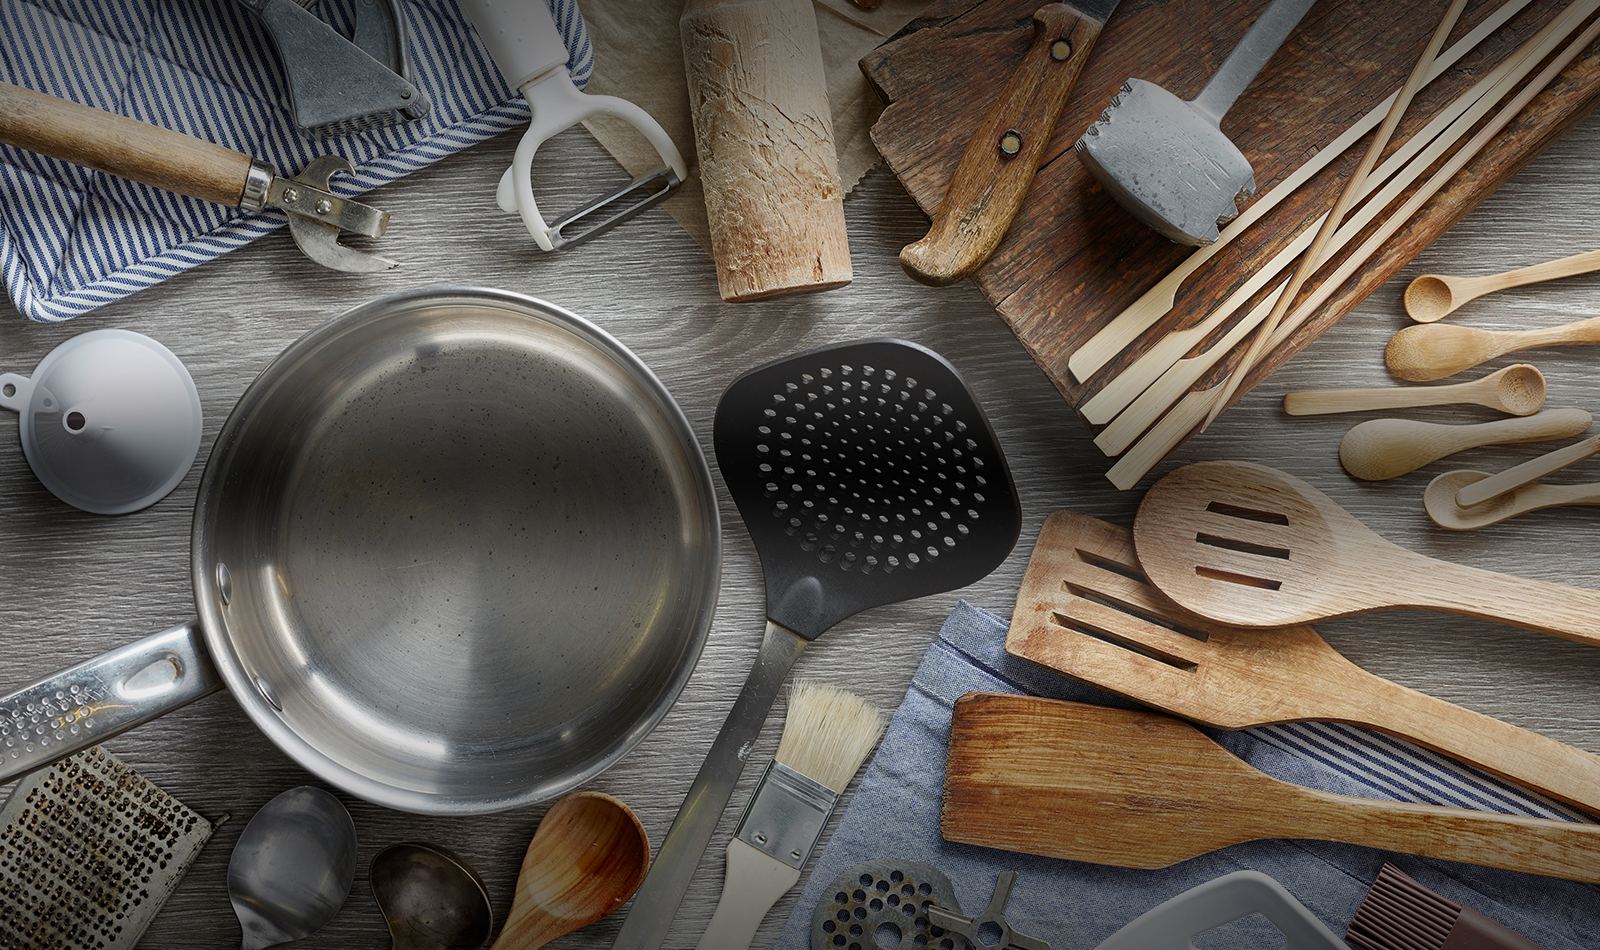 An array of kitchen supplies and smallwares